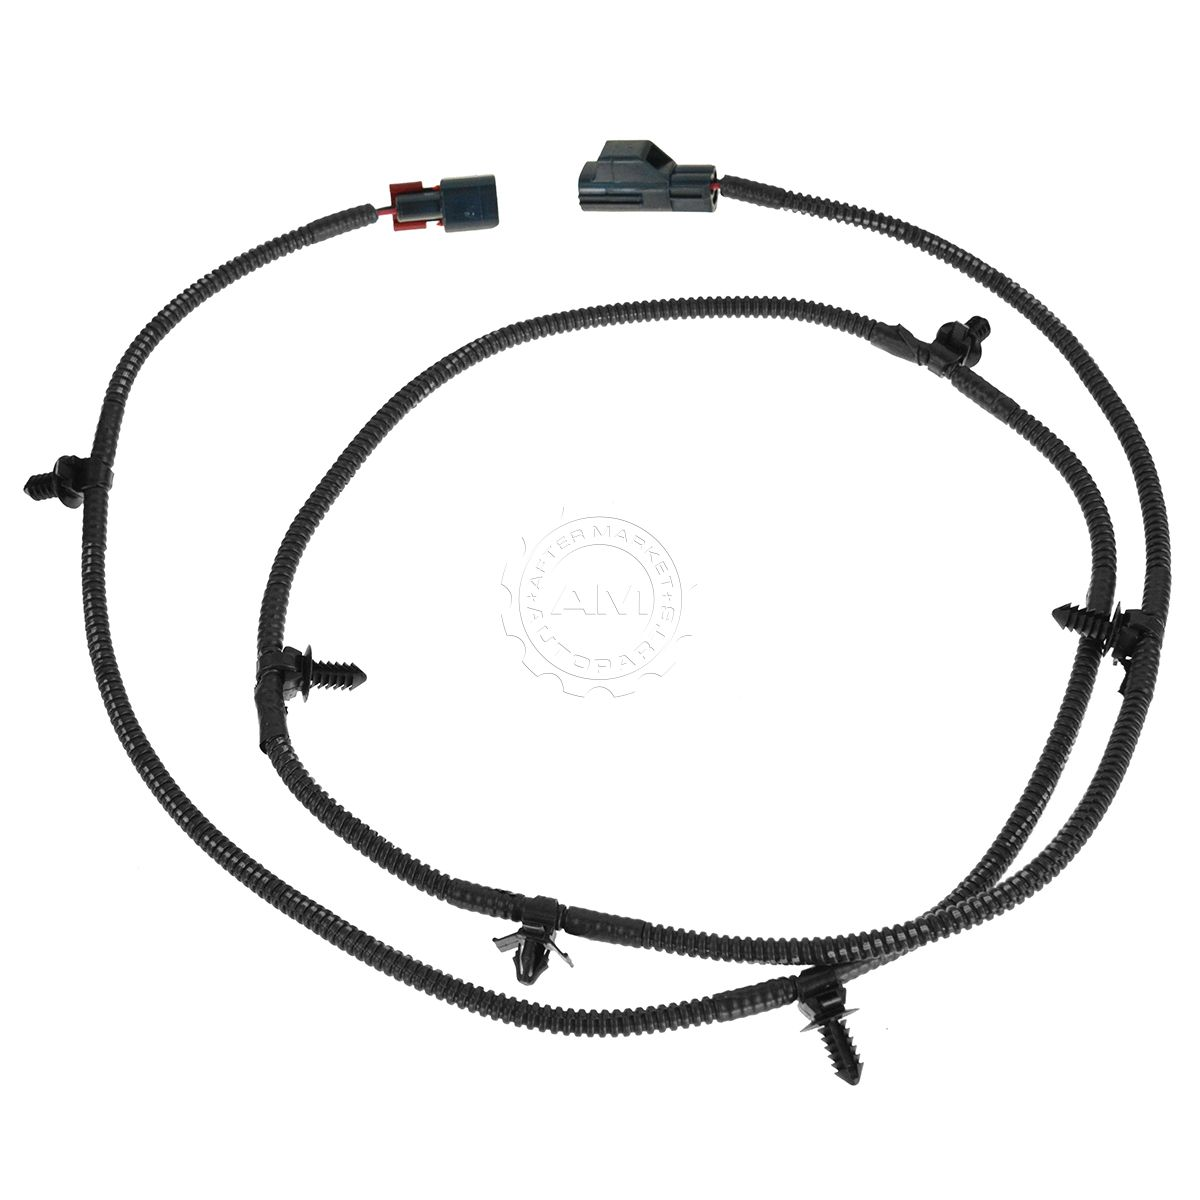 Mopar Under Hood Lamp Light Wiring Harness For Chrysler Dodge Jeep 1968 Charger Gallery Diagram